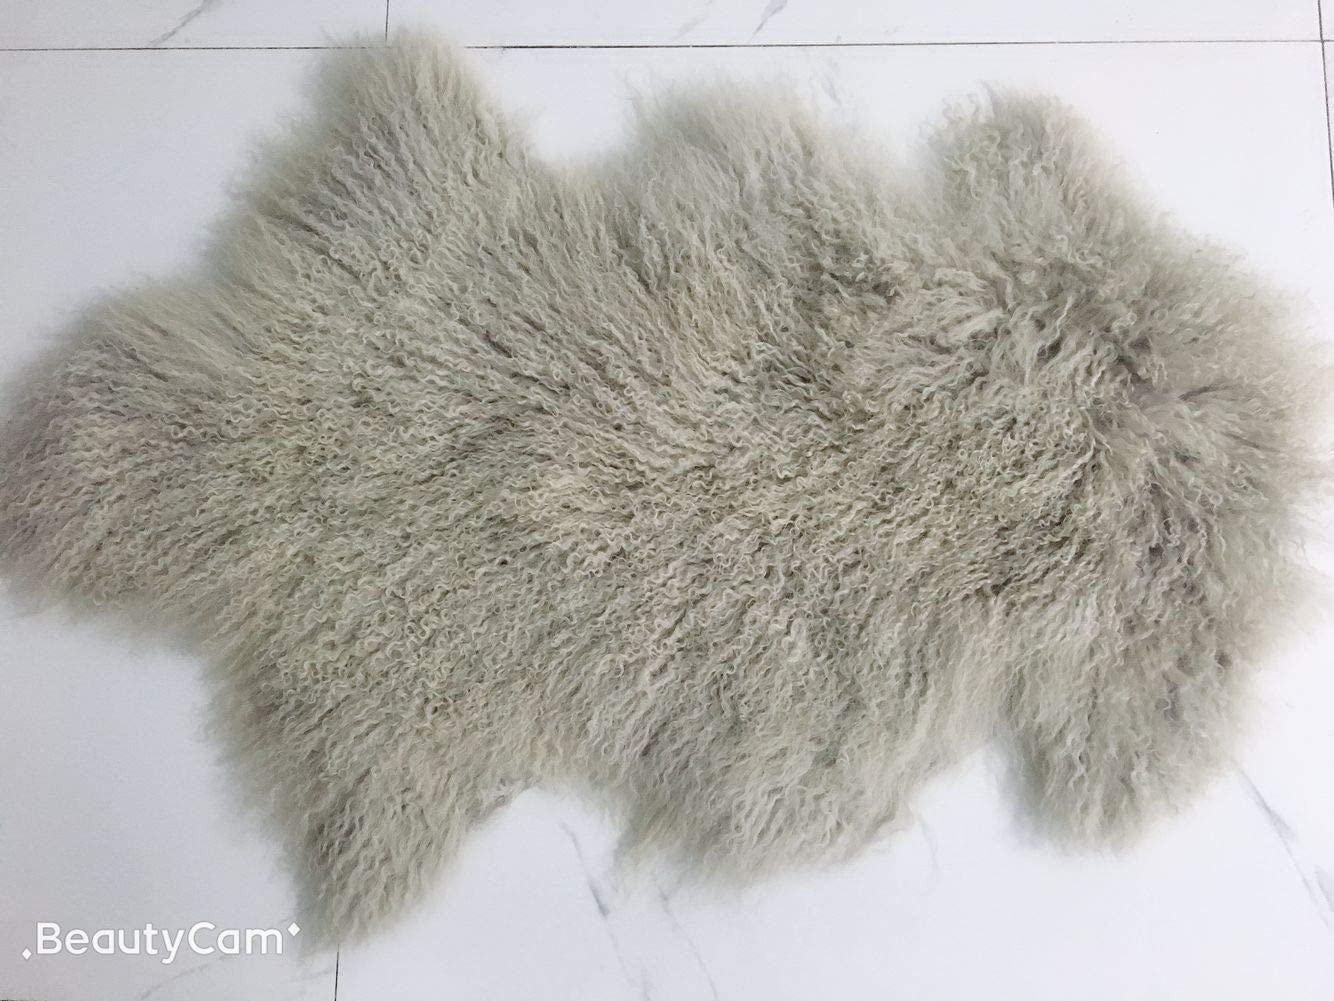 February Snow Deluxe Home Decorative Curly Fur Soft Plush 100 Real Genuine Mongolian Tibetan Lamb Wool Rug Carpet Grey